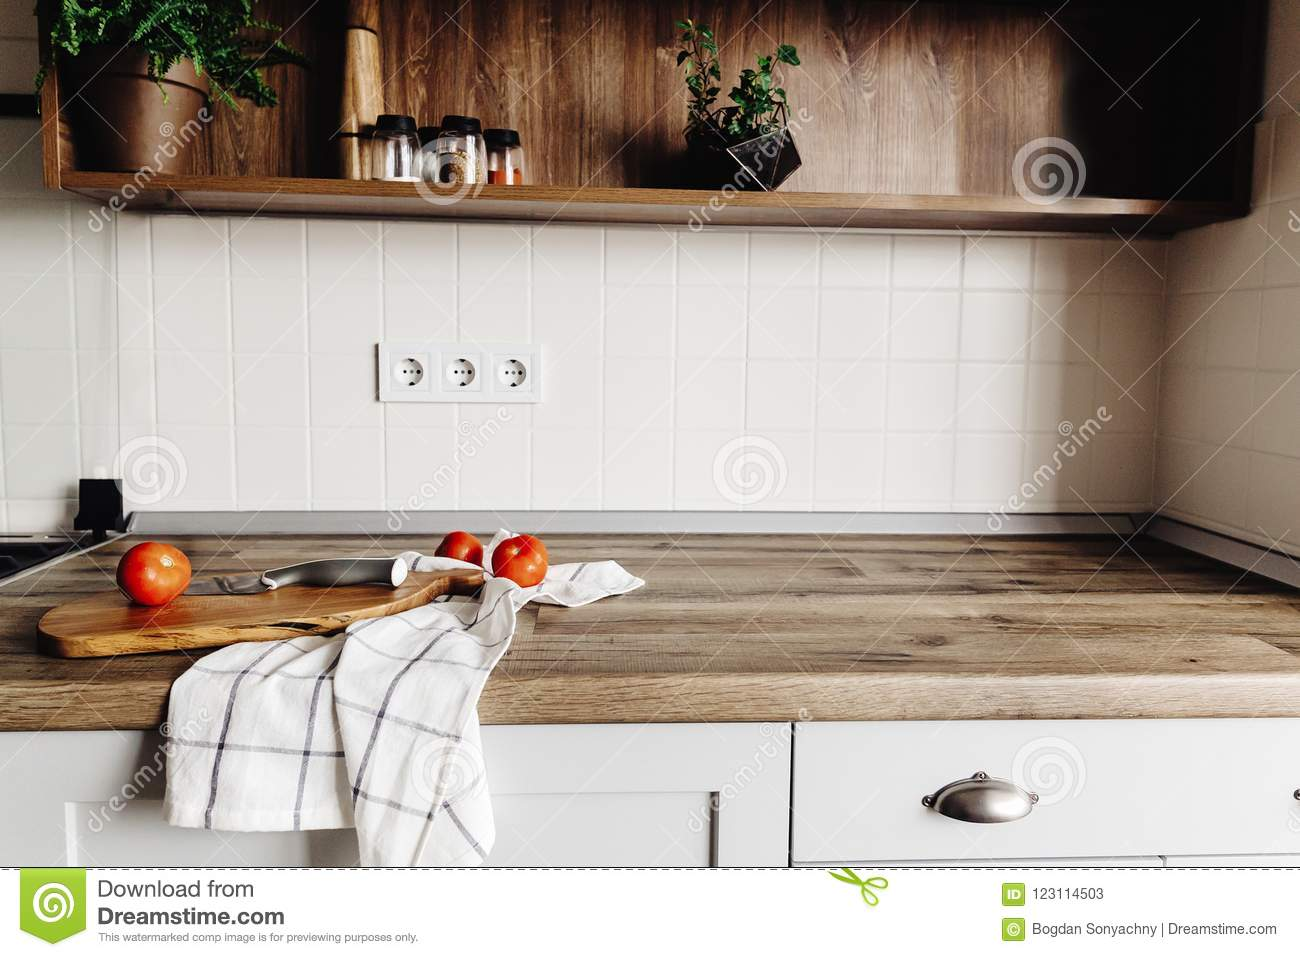 Wooden board with knife, tomatoes on modern kitchen countertop a